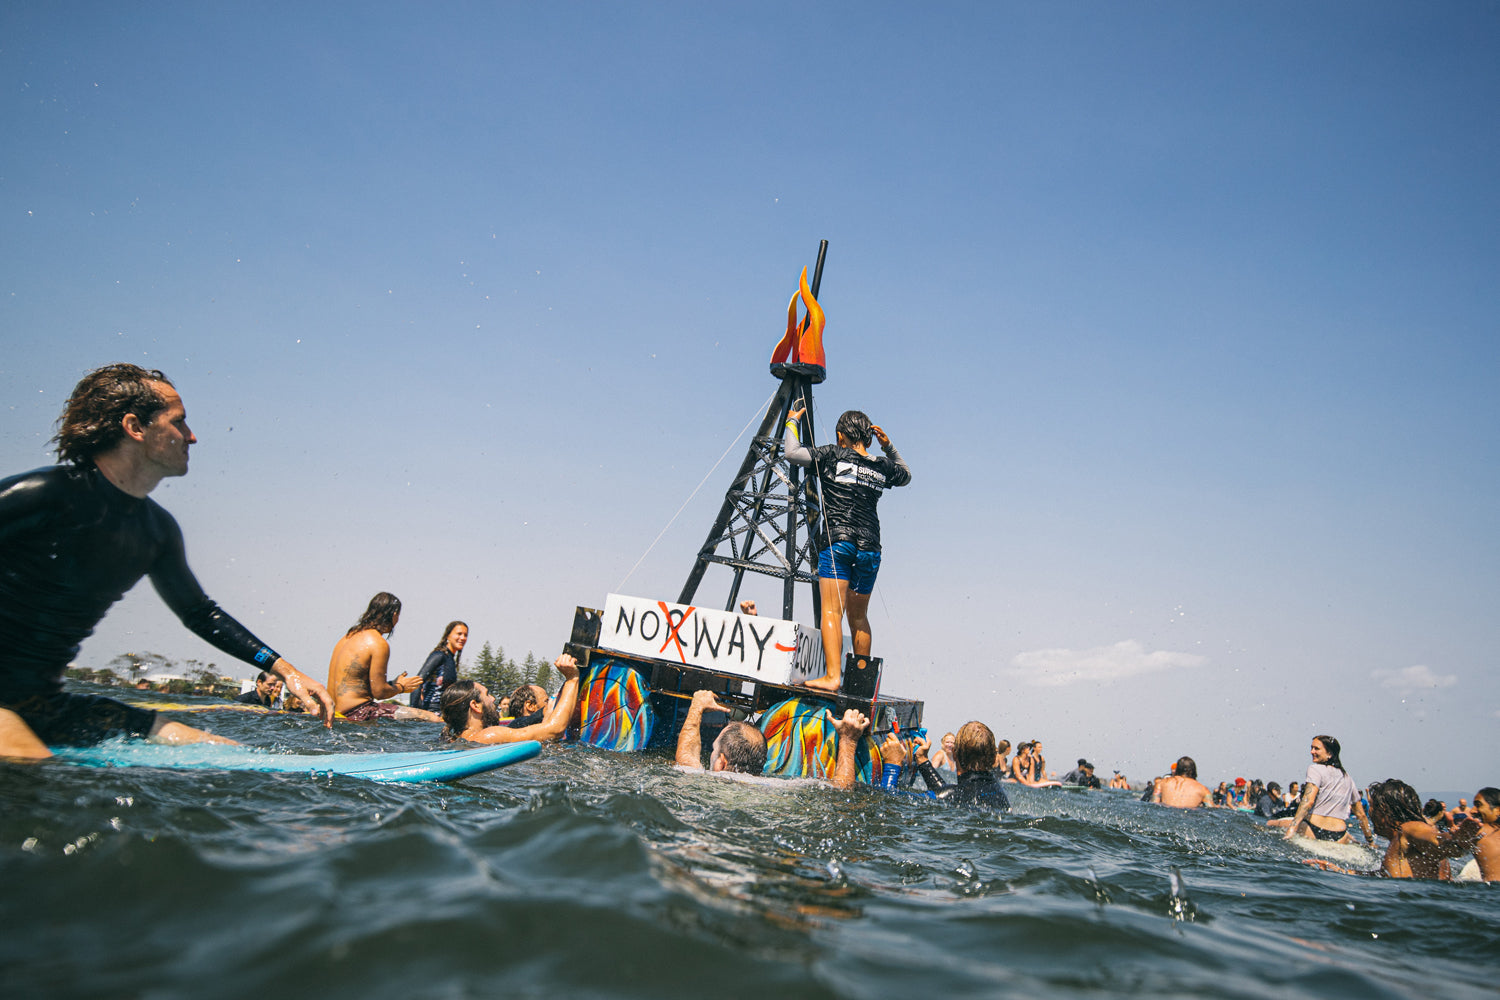 Byron Bay surfers rally around a replica oil rig.